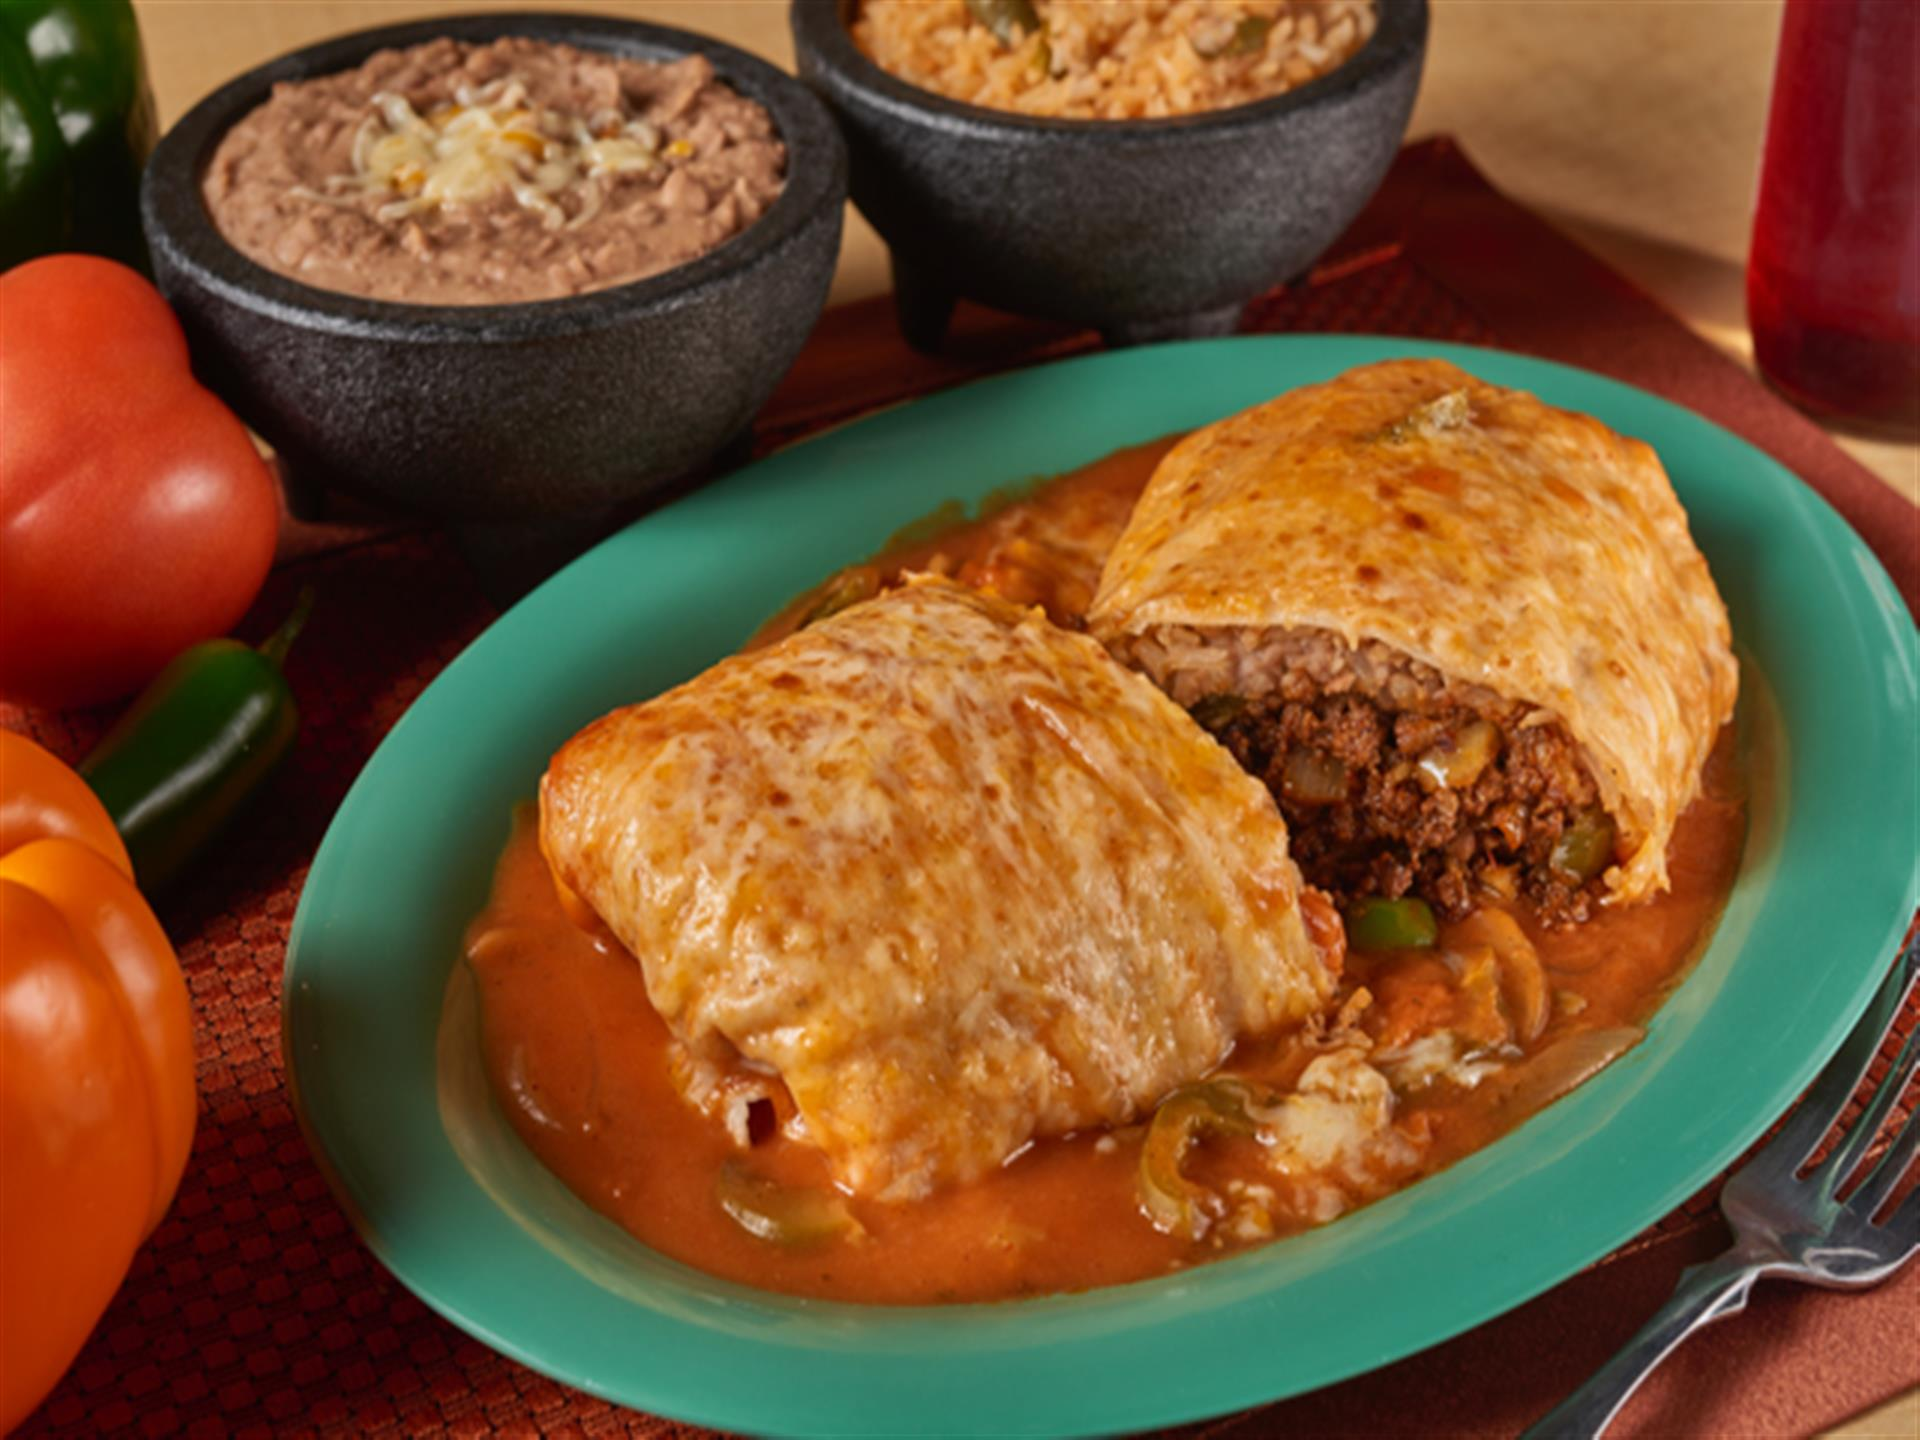 Mexican cuisine - dough stuffed with beef. Rice and refried beans on the side